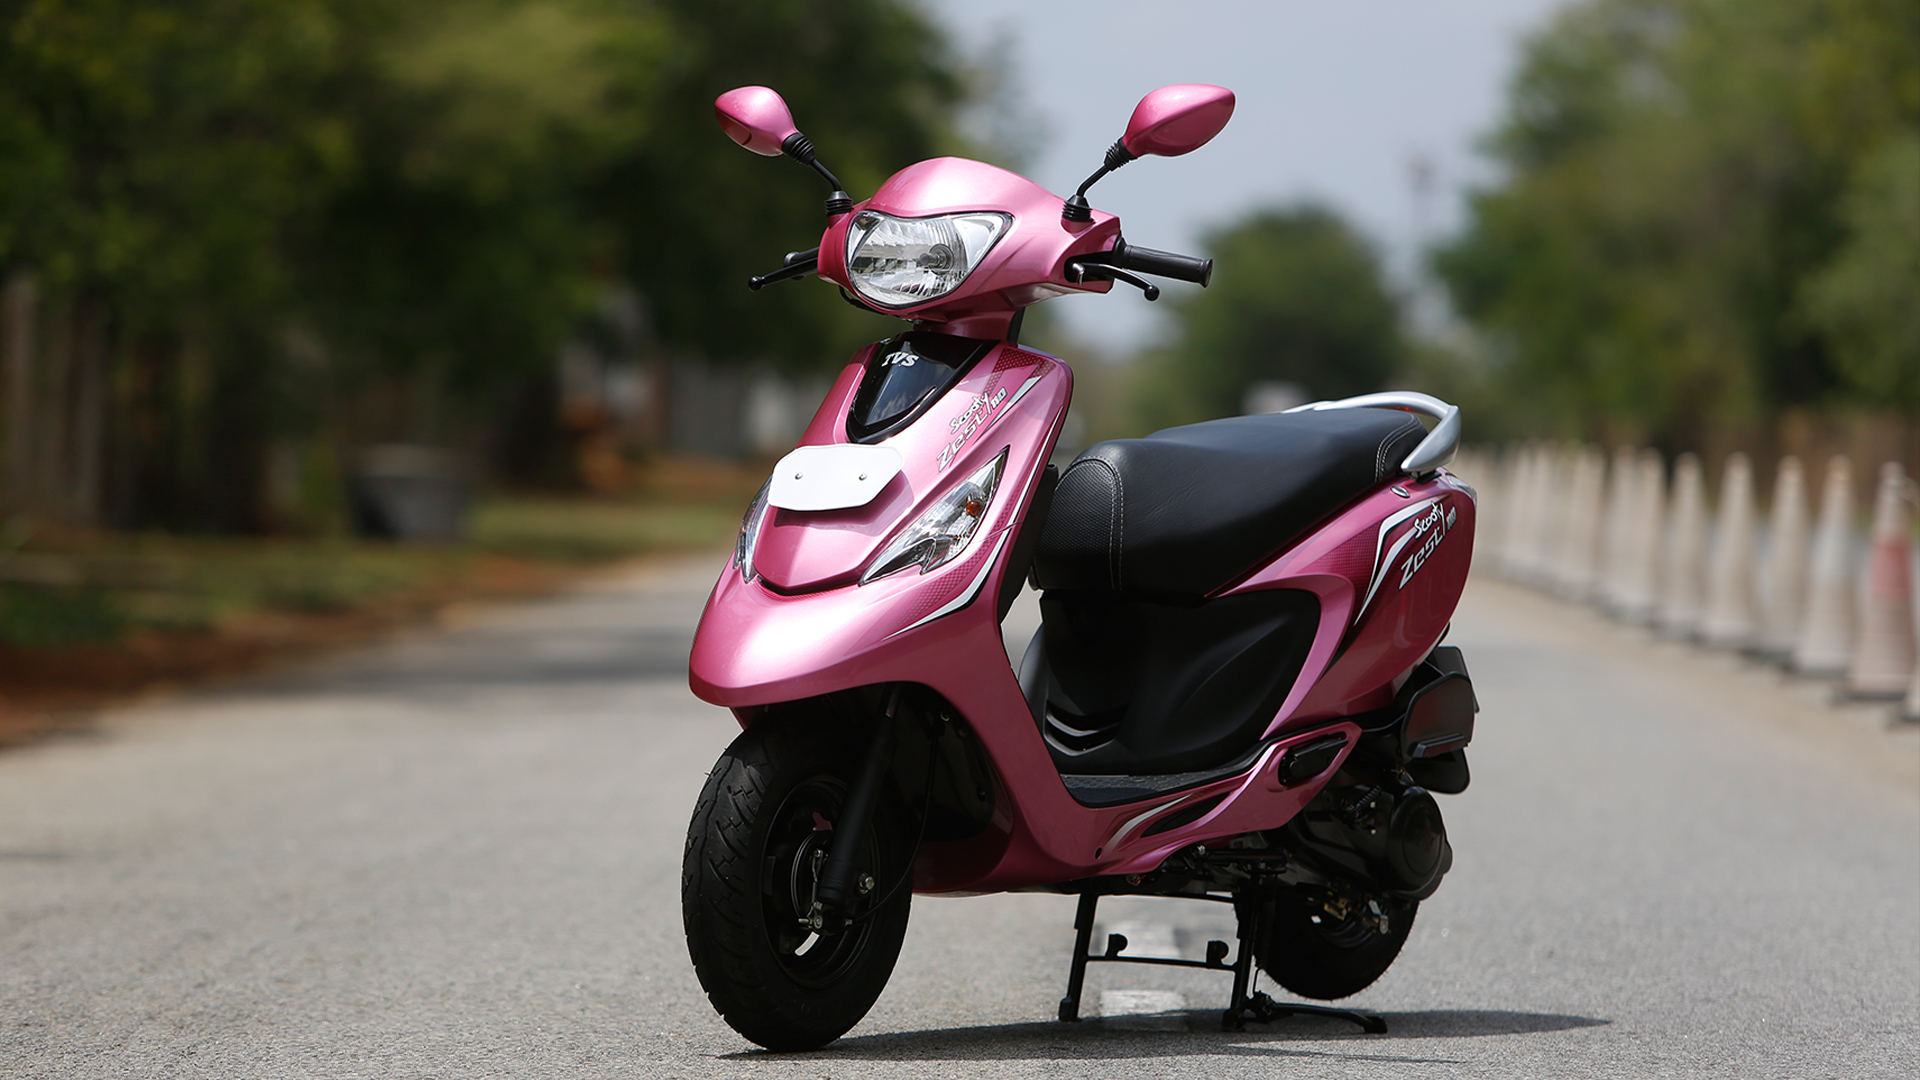 Tvs Scooty Zest 110 2014 Std Price Mileage Reviews Specification Gallery Overdrive